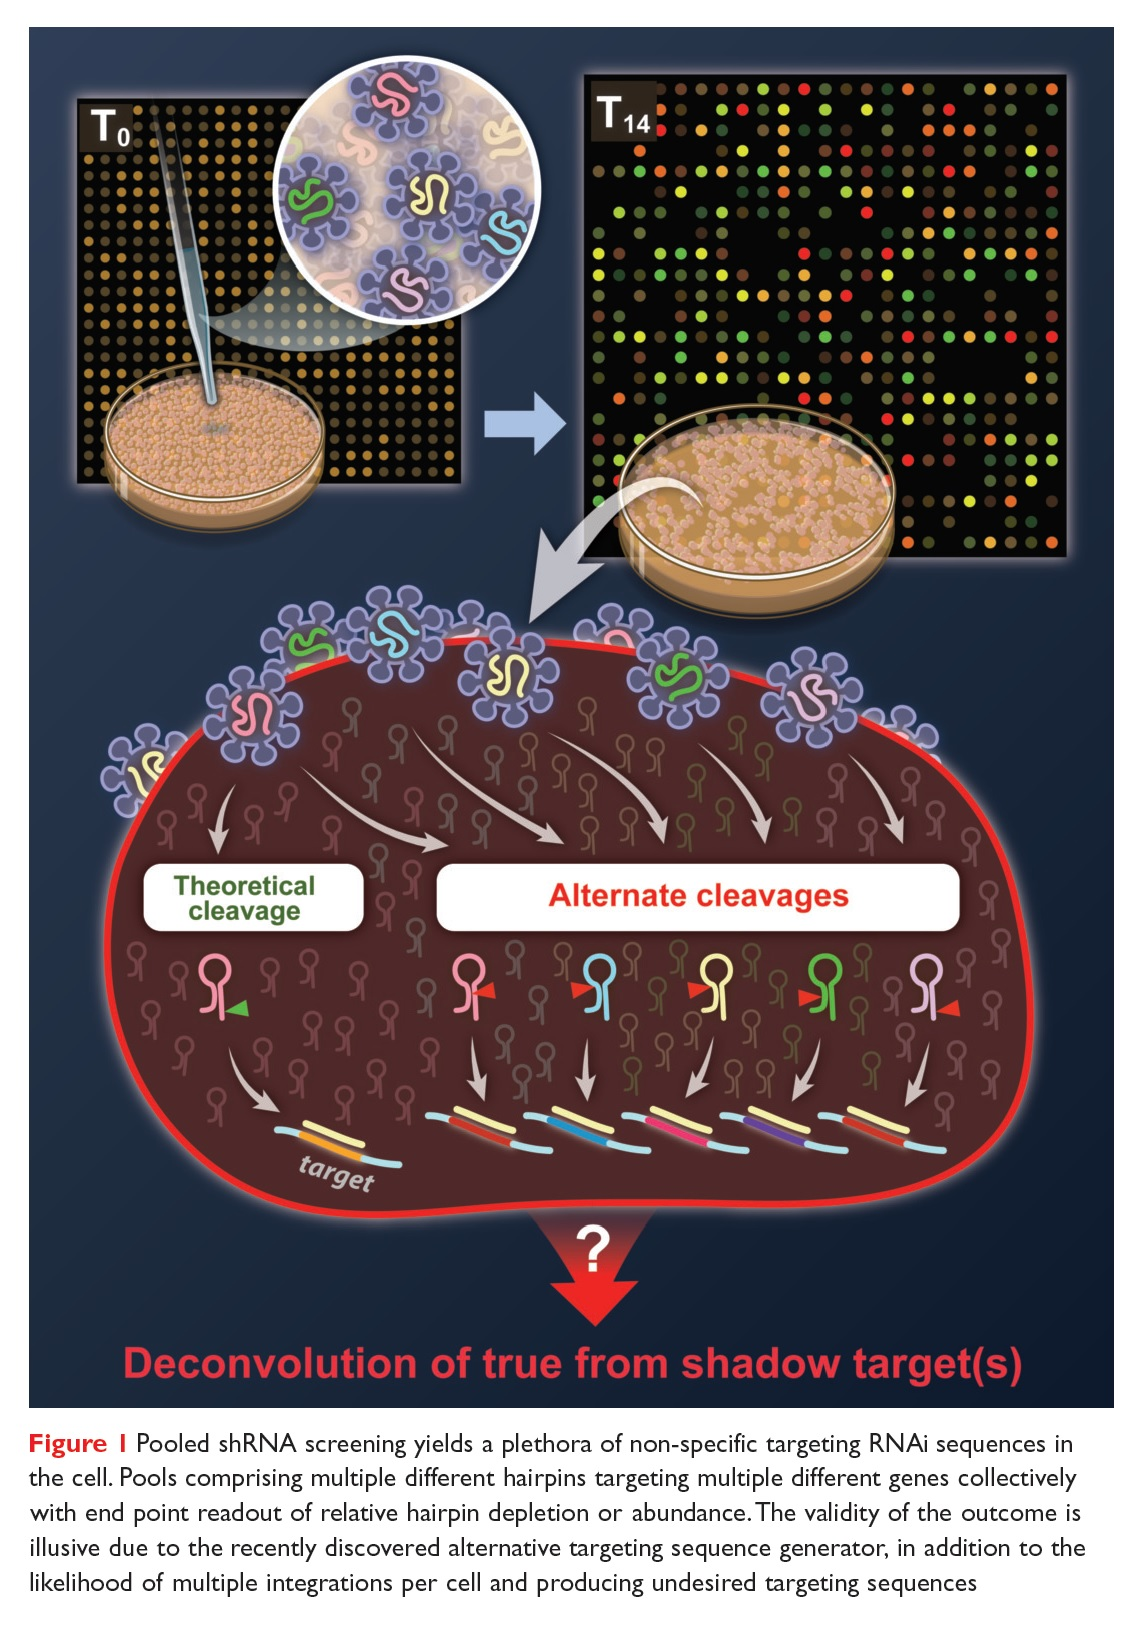 Figure 1 Pooled shRNA screening yields a plethora of non-specific targeting RNAi sequences in the cell